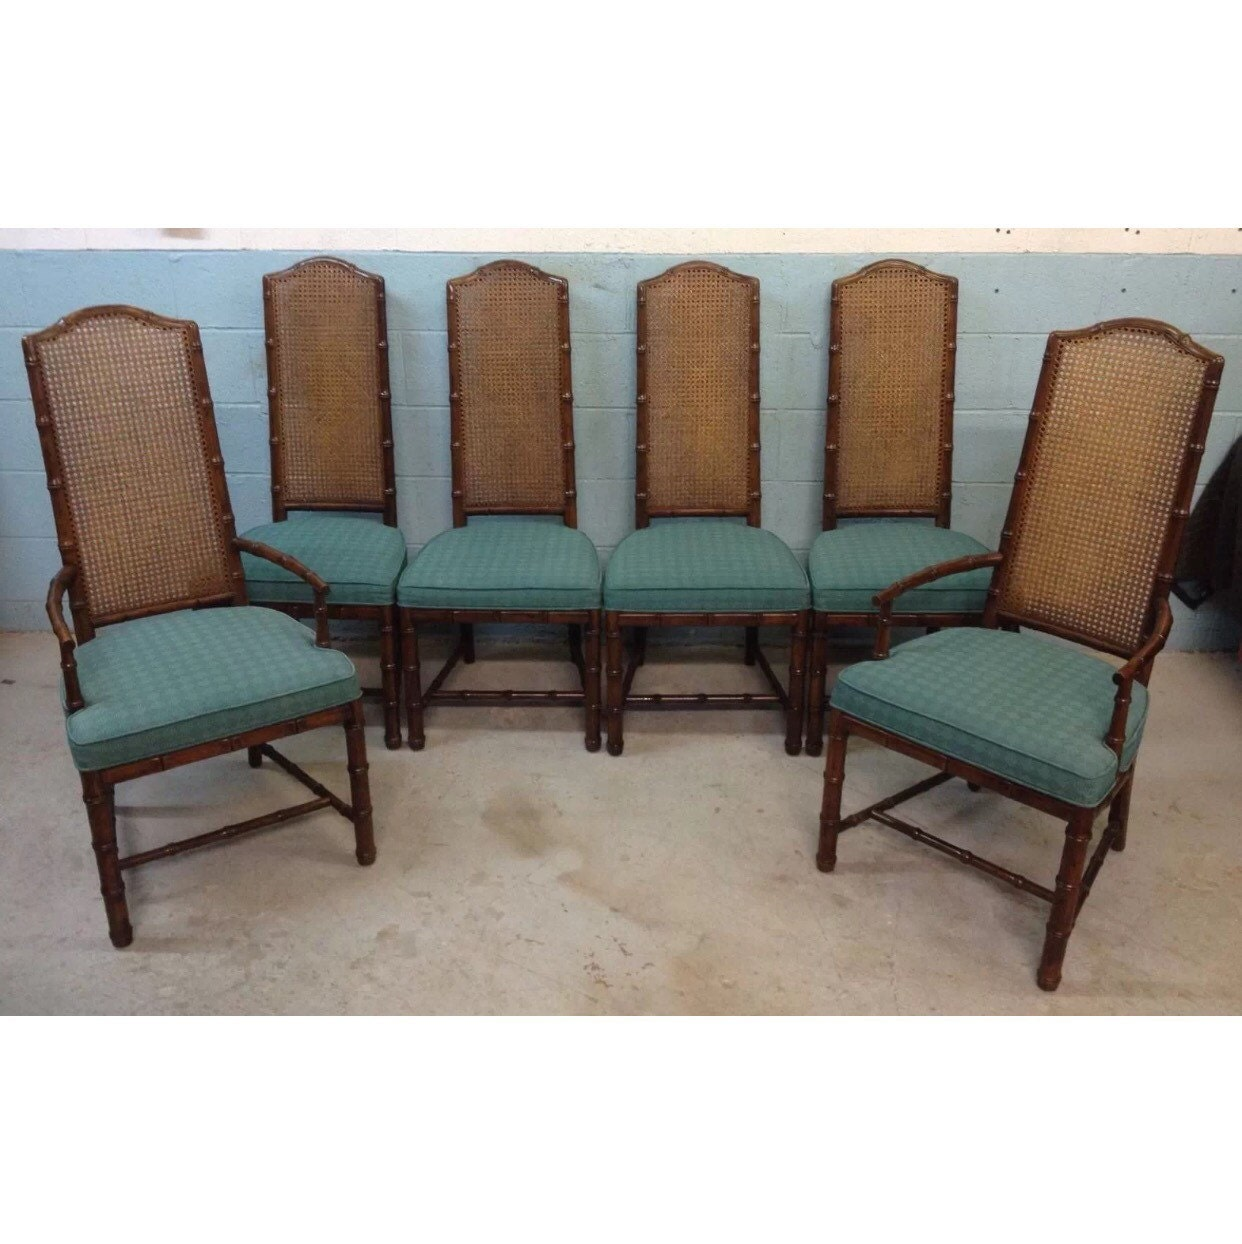 Henredon vintage faux bamboo cane back dining chairs by delcodecor